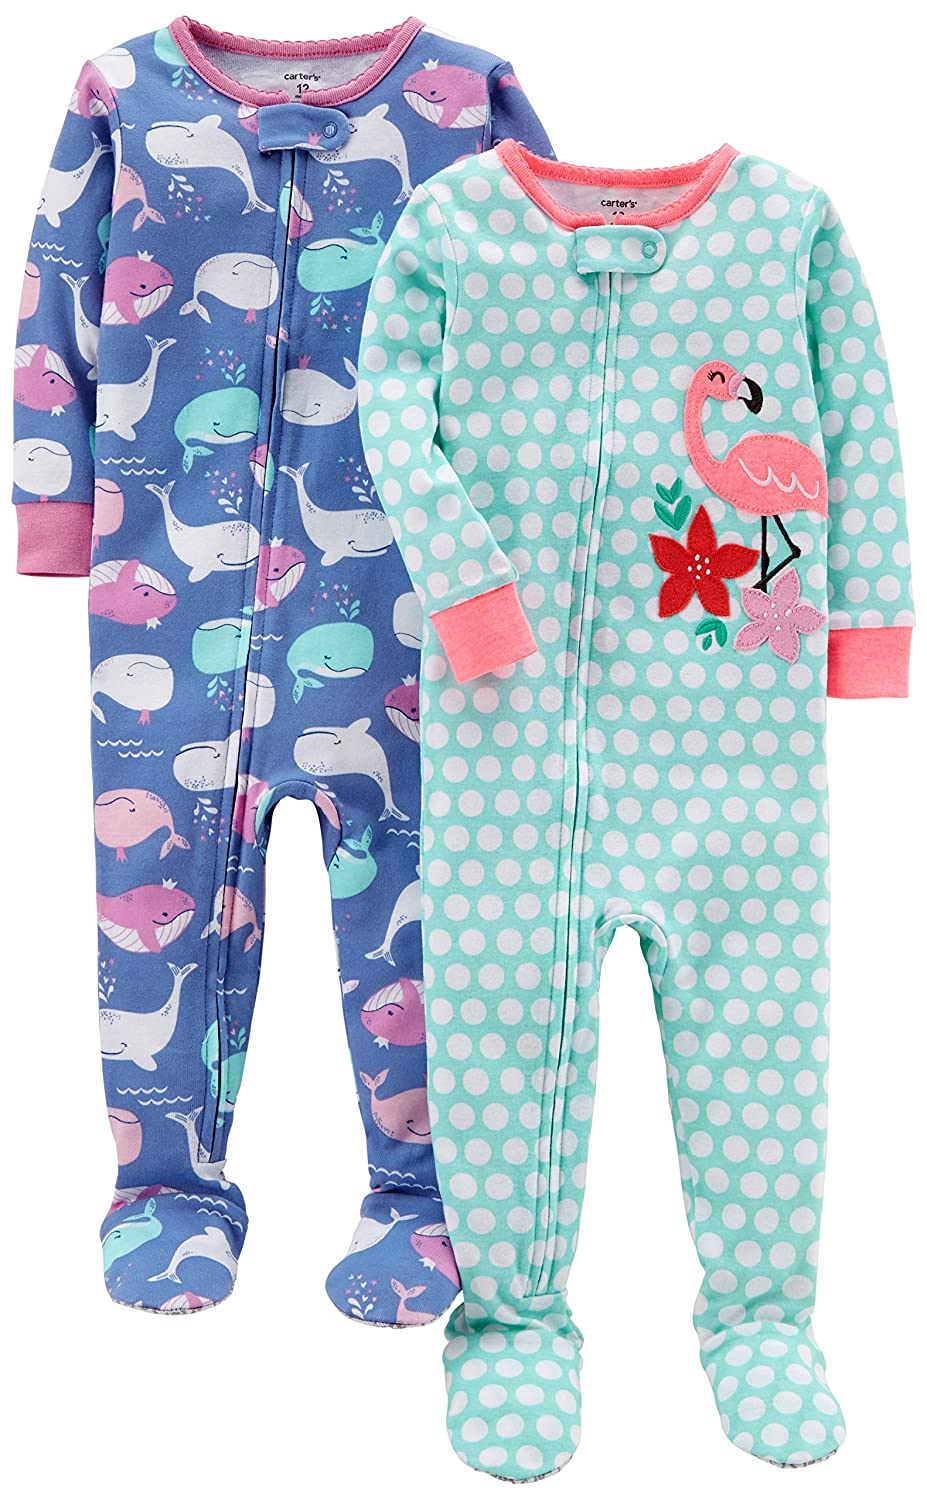 Carter's Baby-Girls Baby 2-Pack Cotton Footed Pajamas Carter' s 13865410